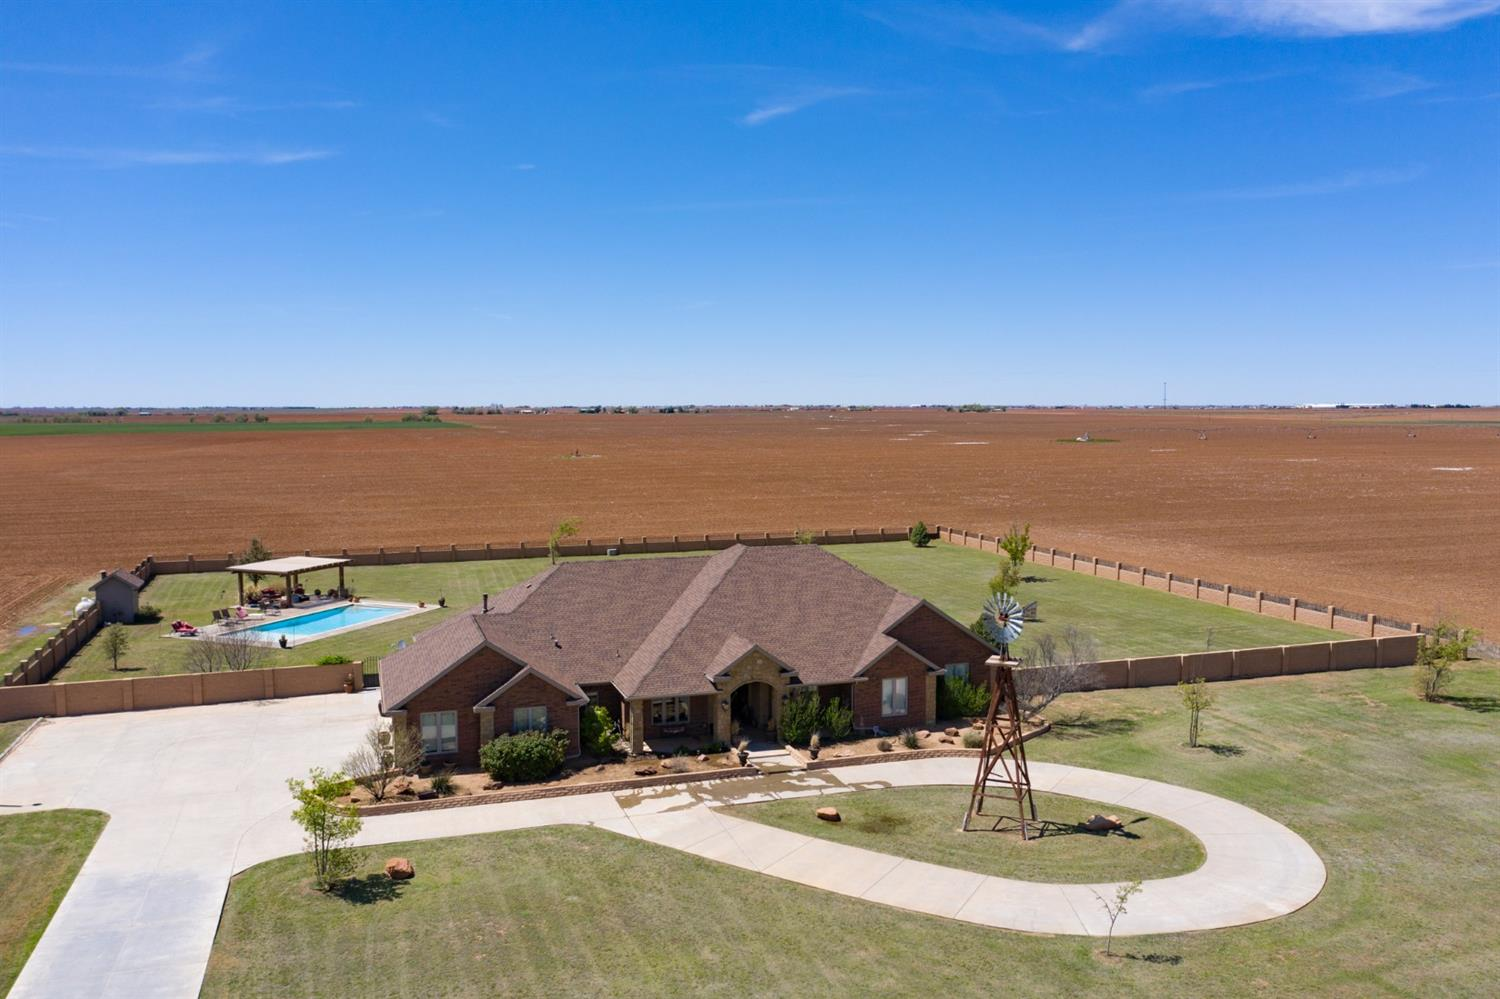 Country Living at its finest with breathtaking sunrise and sunset views for miles.  This custom one owner home located on 3 acres has 2 large living areas plus a study and a basement/media room, salt water bahama beach pool, five bedrooms 4 baths, built in dressers in closets, 3 car oversized garage, 3 fireplaces,Backyard has cinder block fence.  Conveniently located just west of Buena Vista Estates with future easy access the new loop 88.